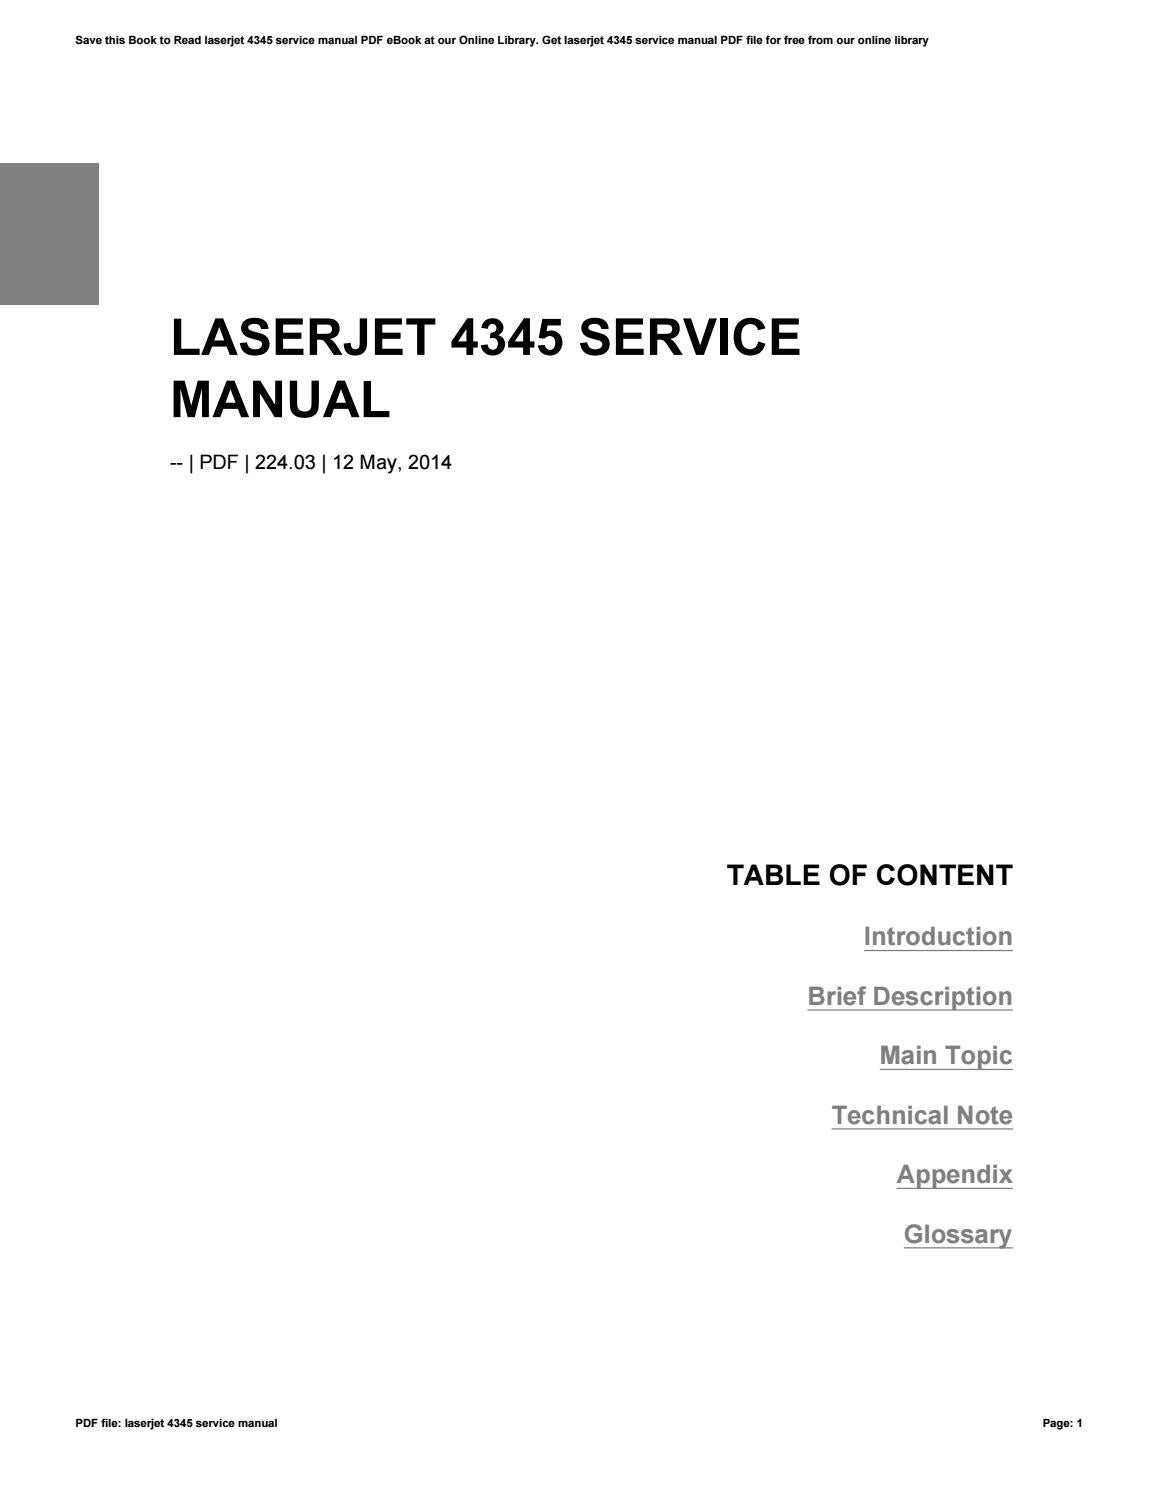 laserjet 4345 service manual by wierie91 issuu rh issuu com hp 4345 printer service manual hp 4345 service manual pdf